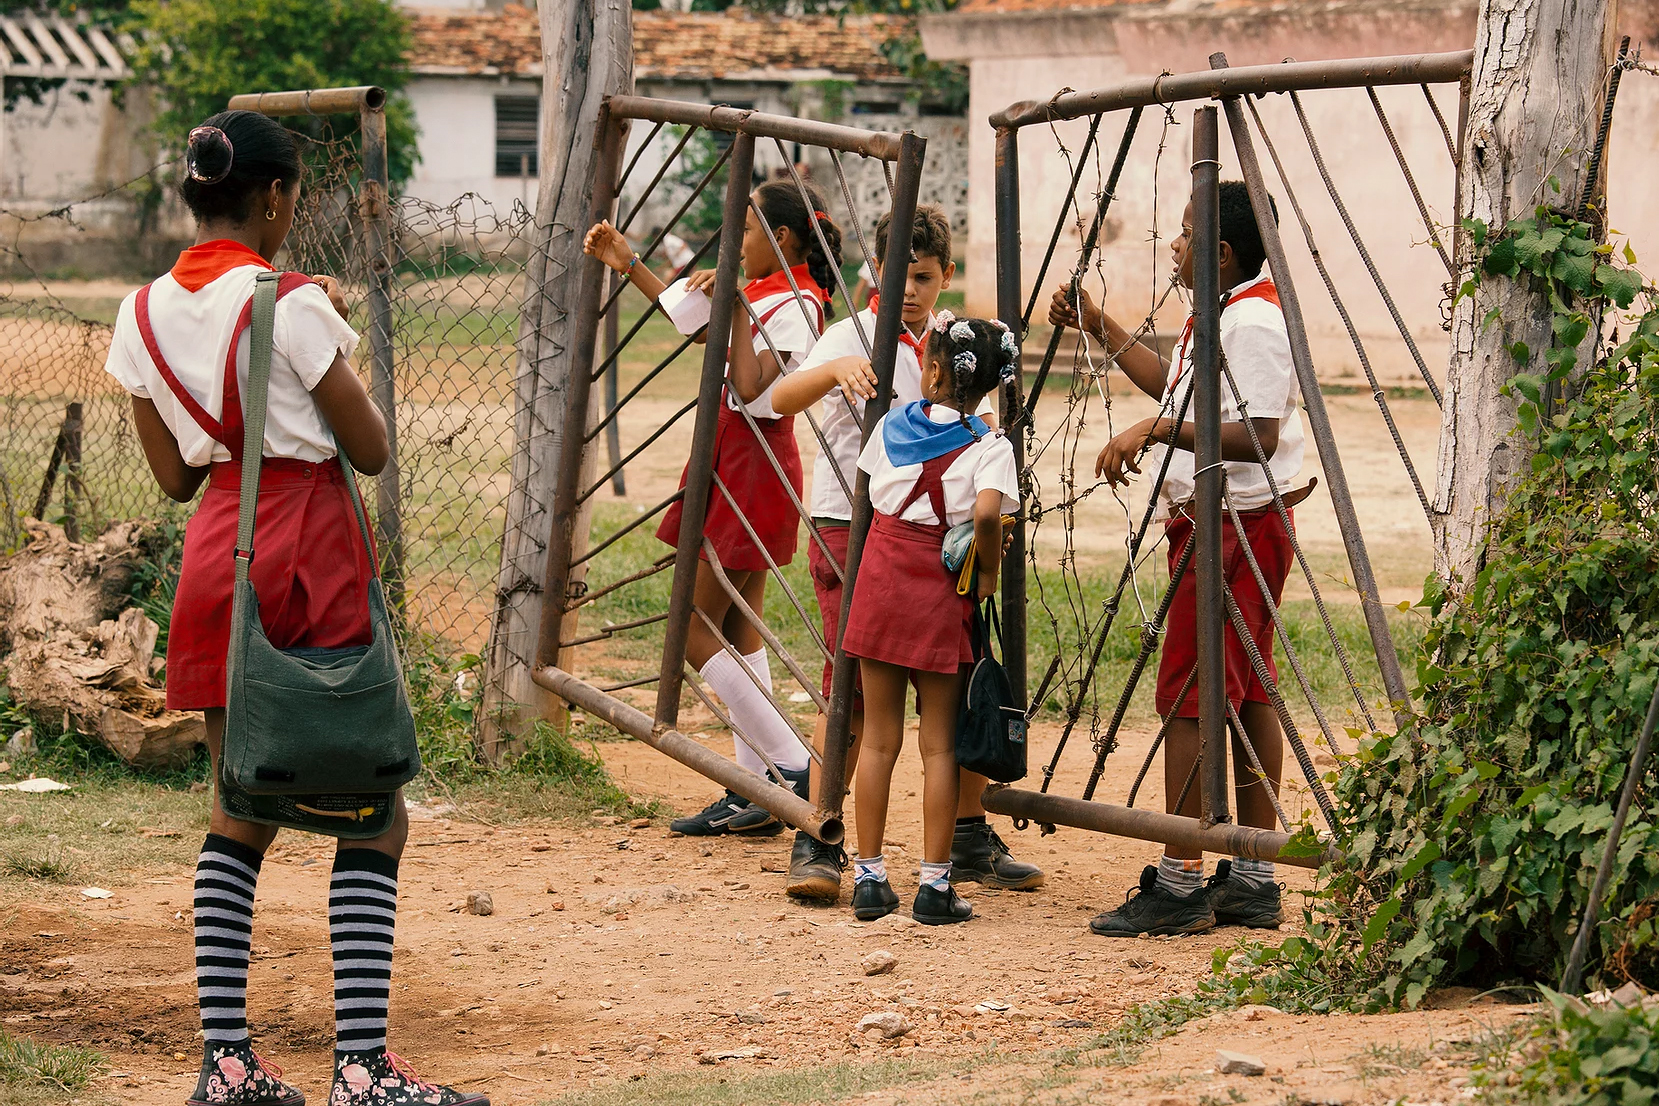 Color photo by Alex Almeida, school children,Cuba.